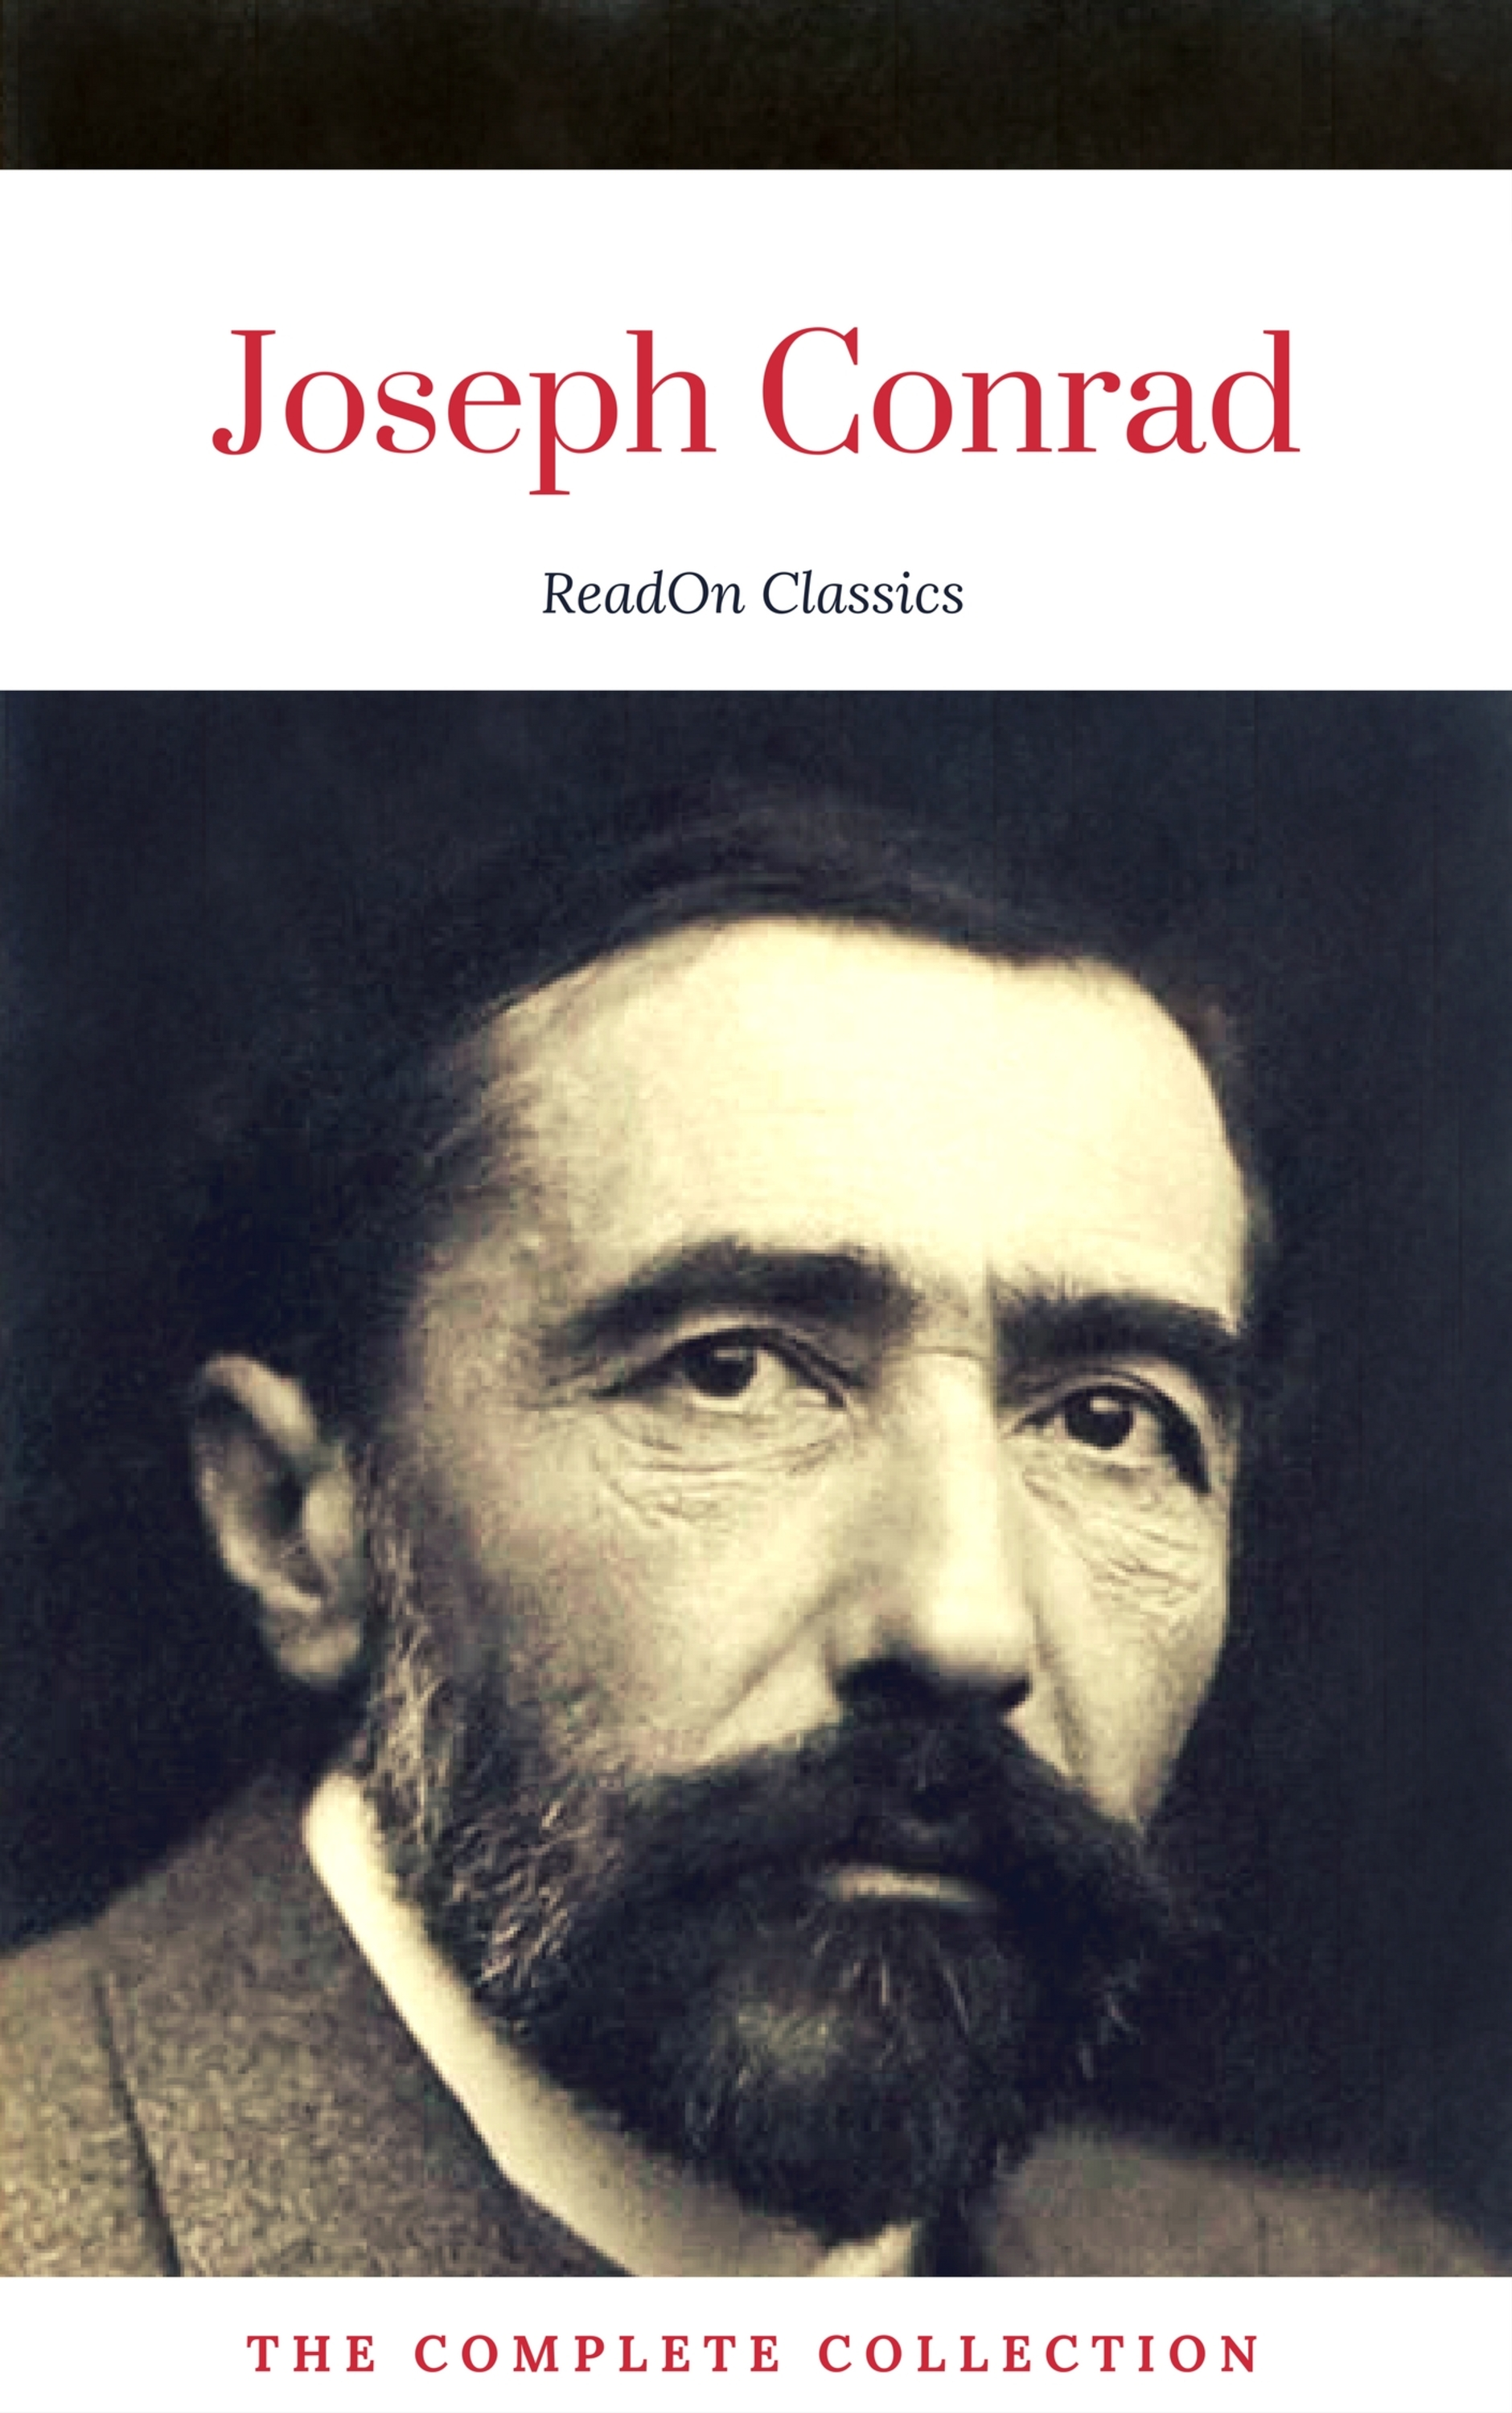 joseph conrad the complete collection readon classics